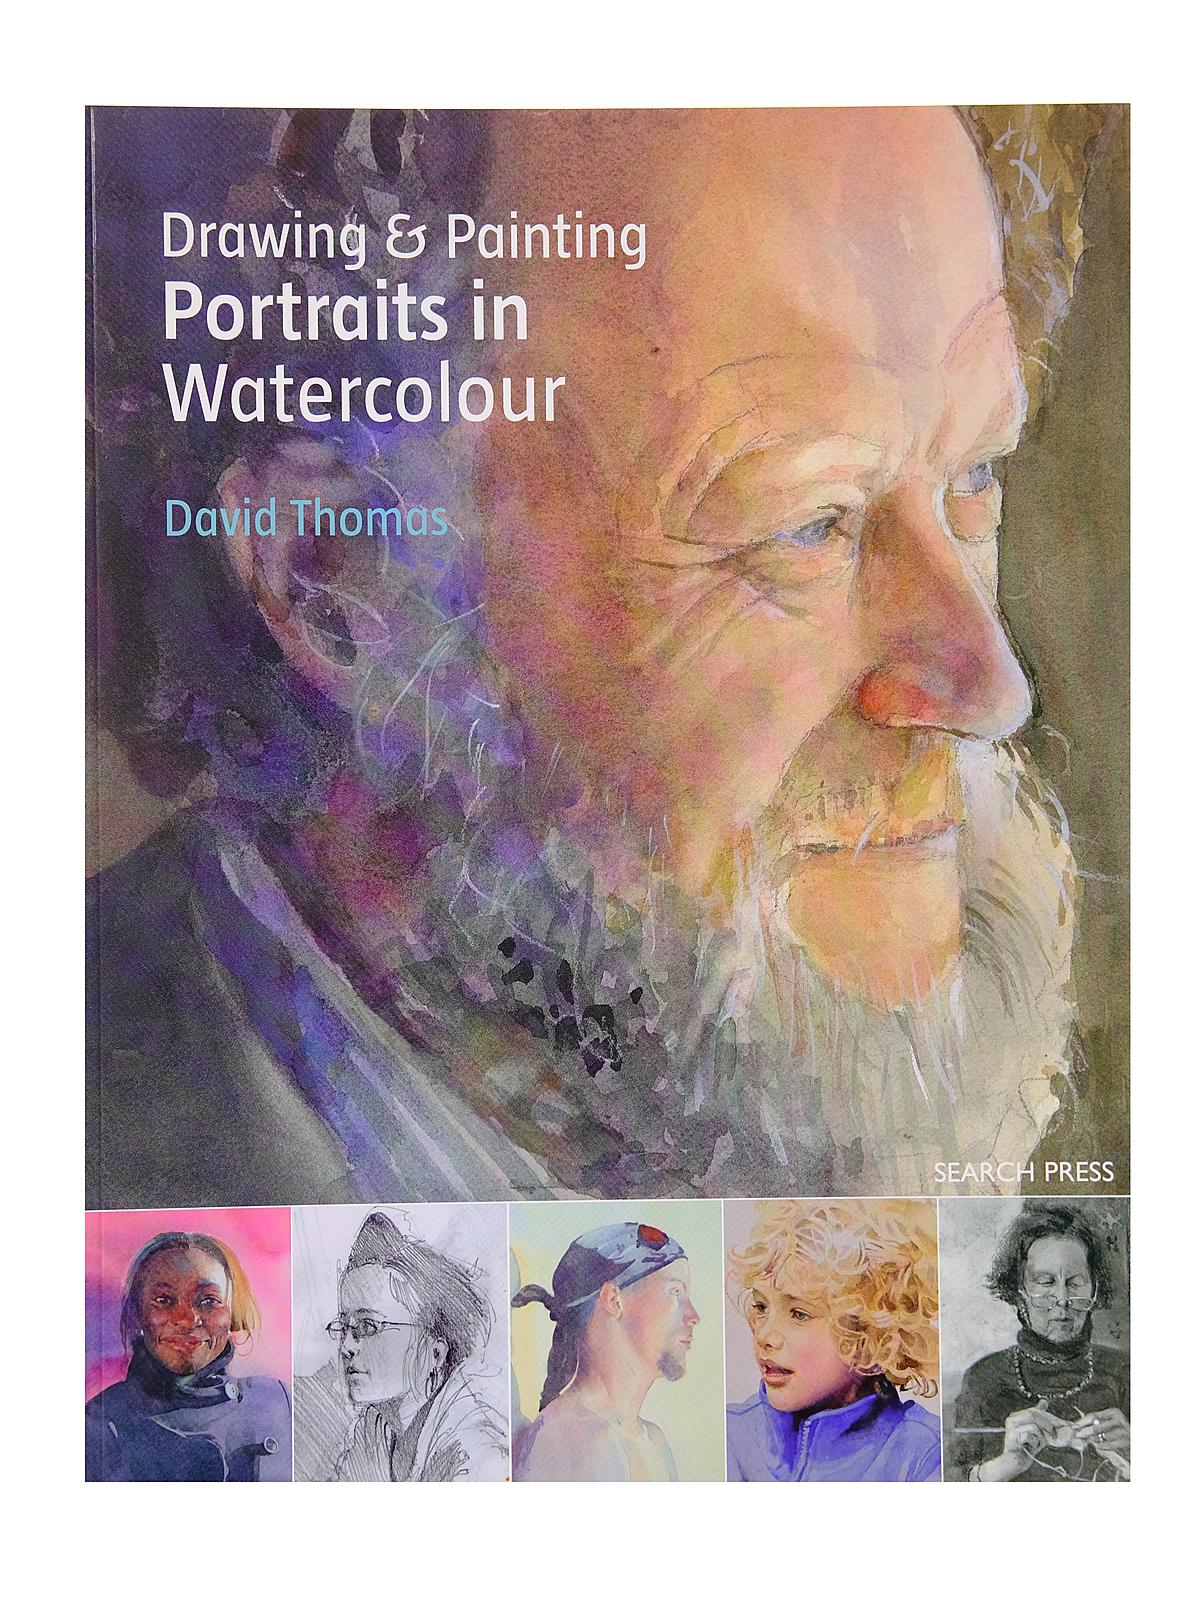 Search Press - Drawing & Painting Portraits in Watercolour